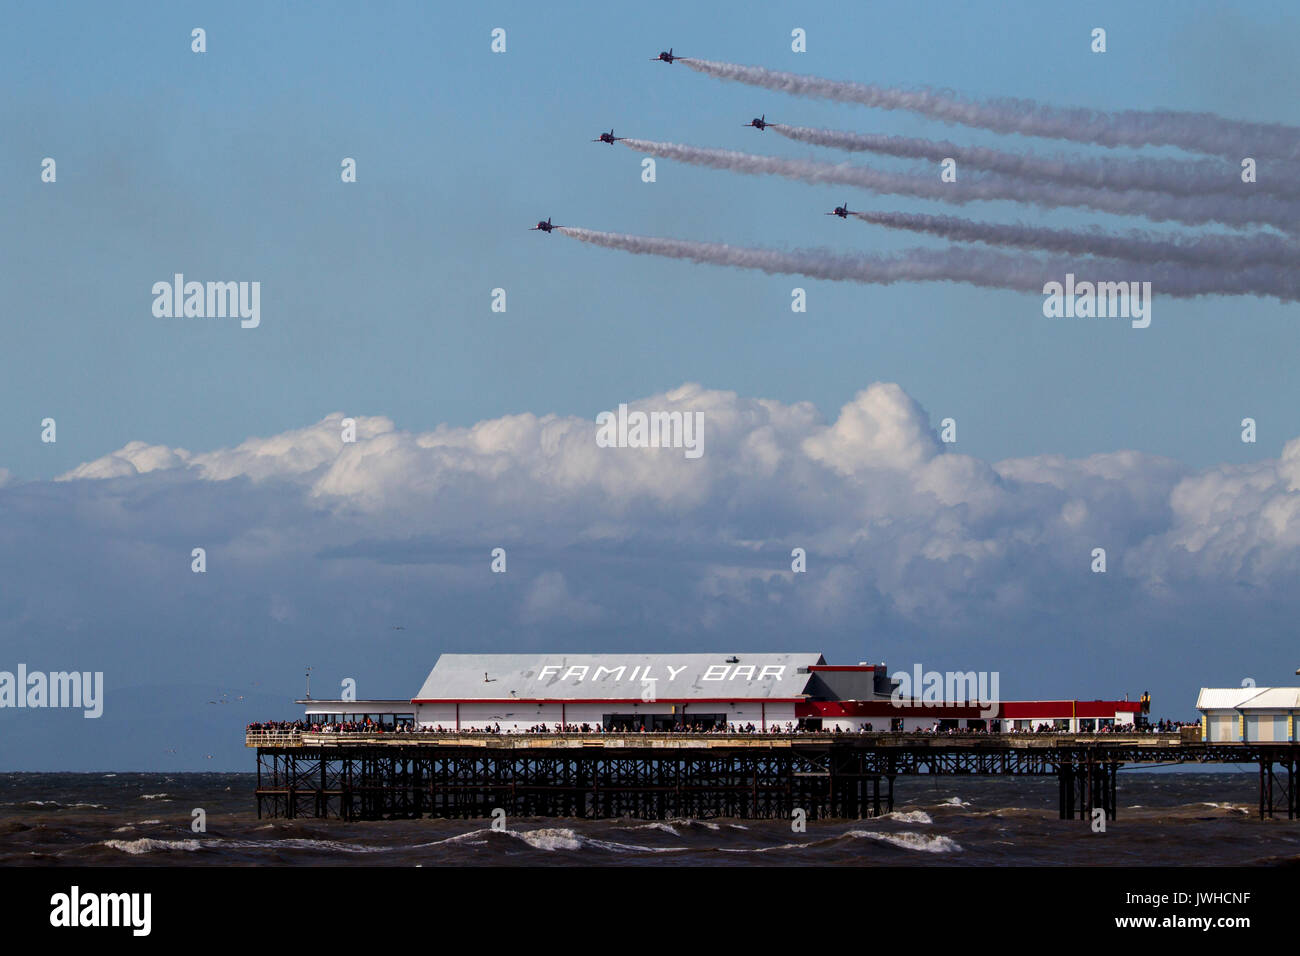 Blackpool, Lancashire, UK. 12th Aug, 2017. The RAF Red Arrows apparently overflying the Central Pier at Blackpool Credit: Russell Millner/Alamy Live News - Stock Image